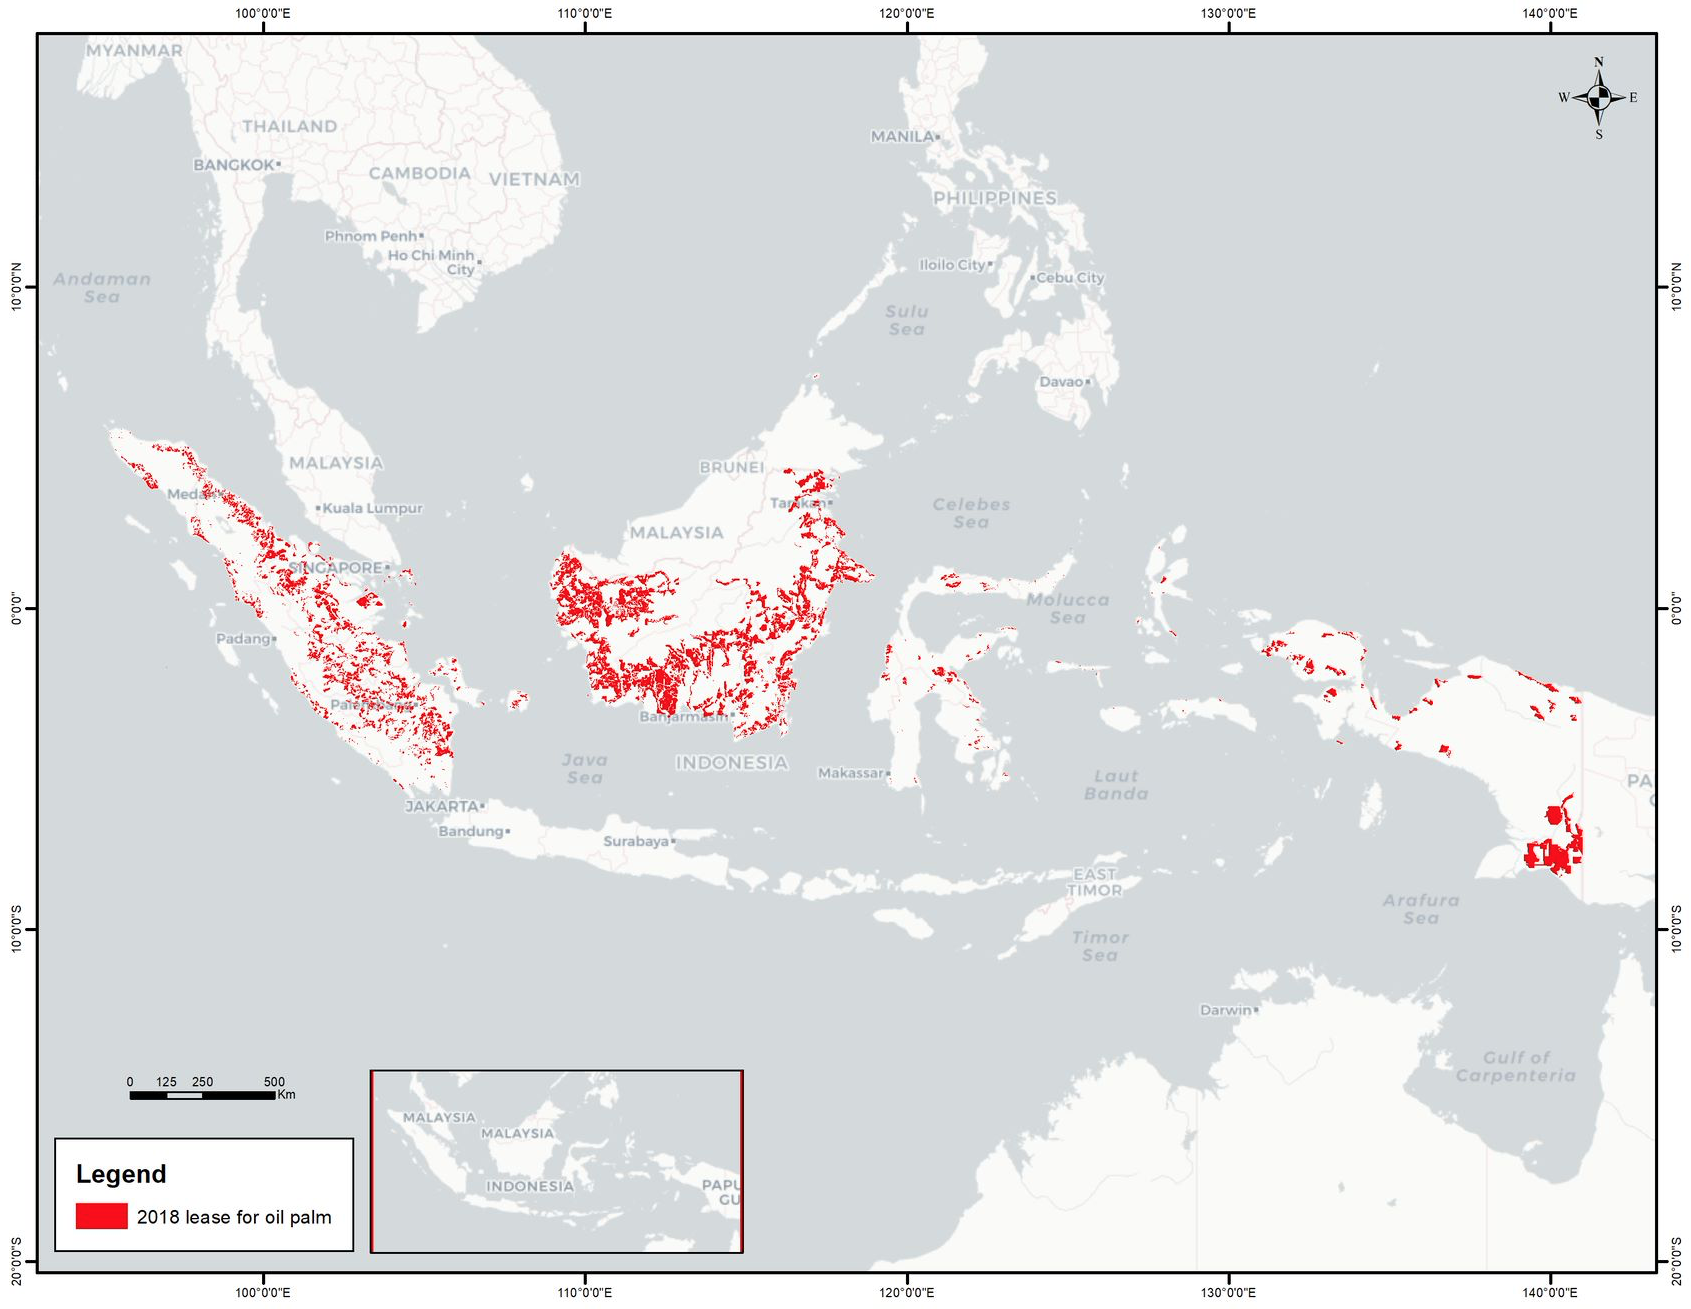 28 Percent of Indonesia's Palm Oil Landbank Is Stranded